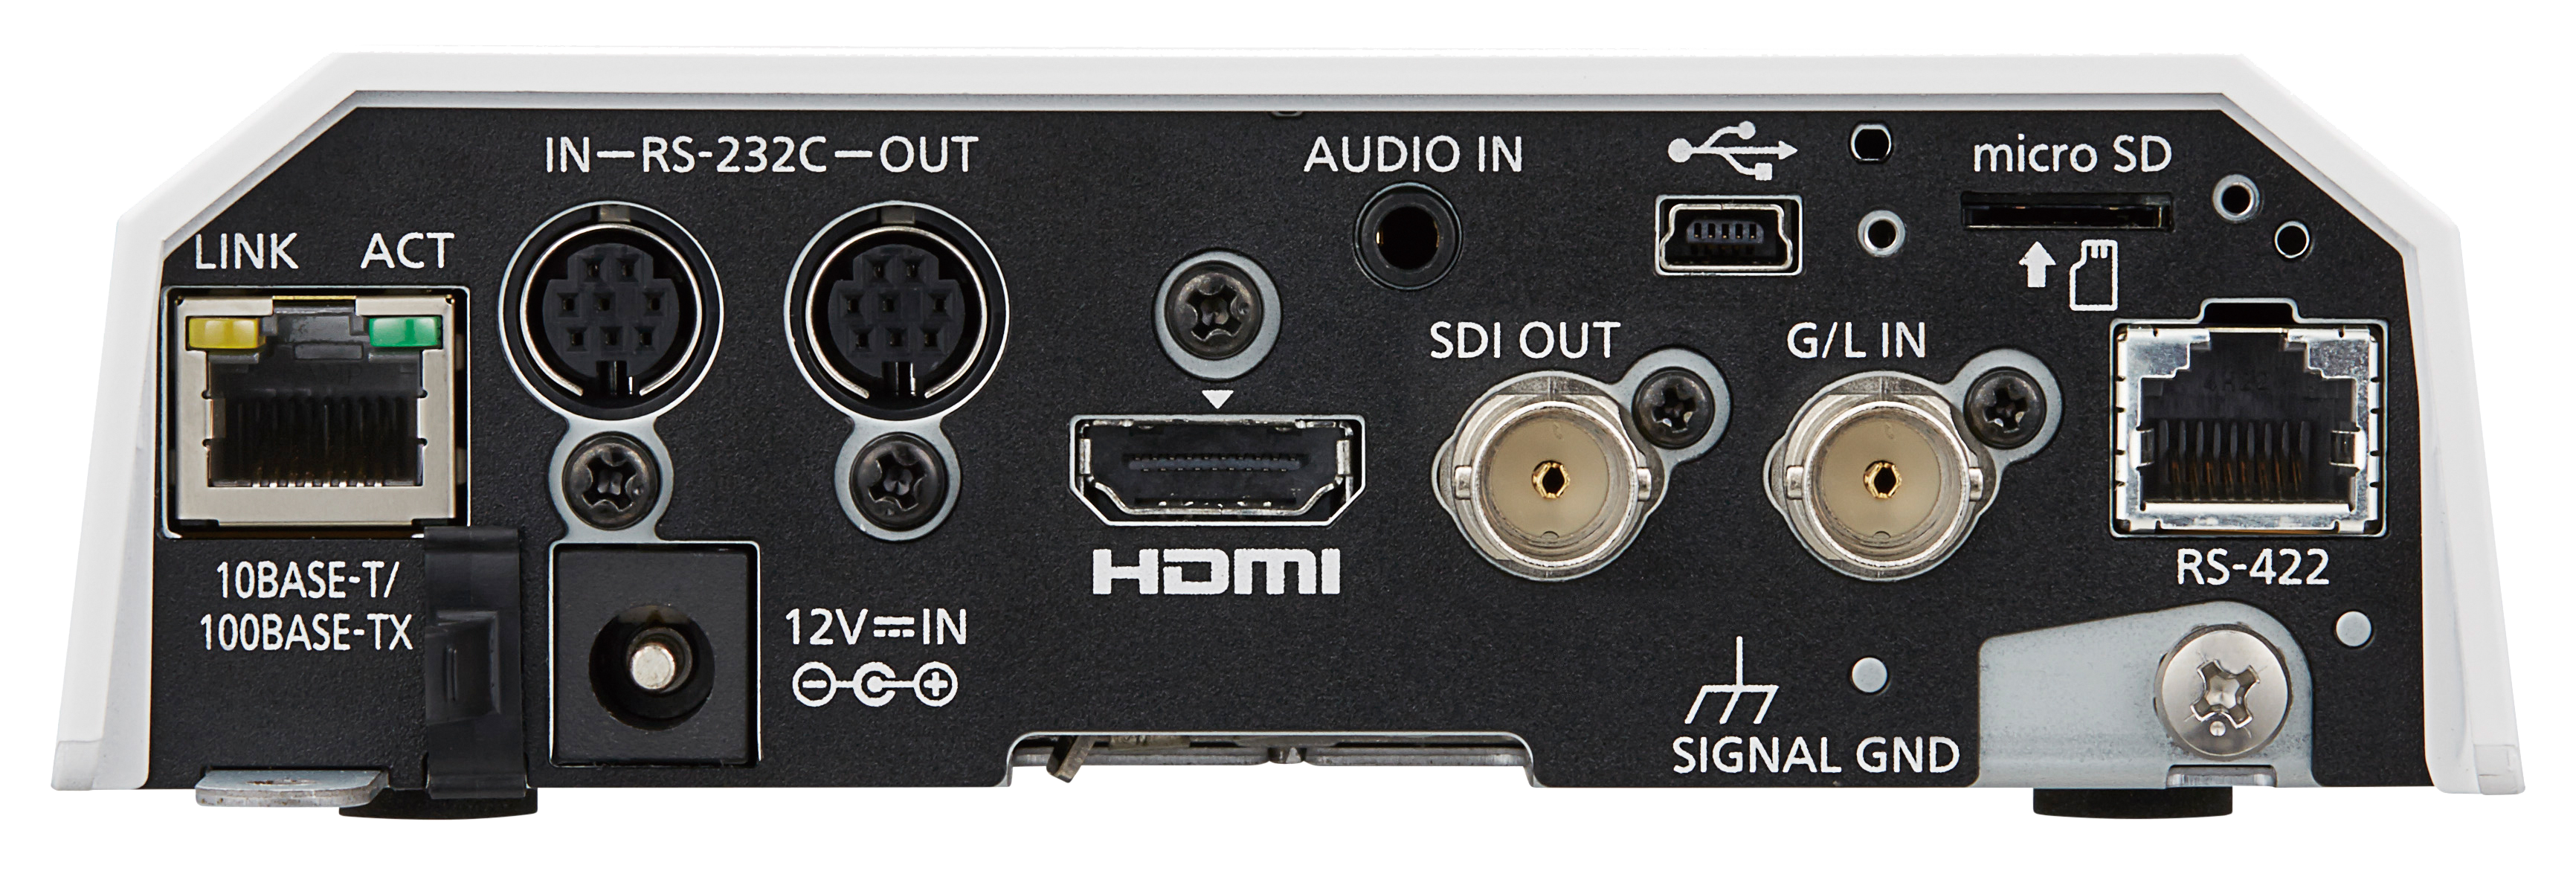 Full HD Remote Camera With Built-in Network Device